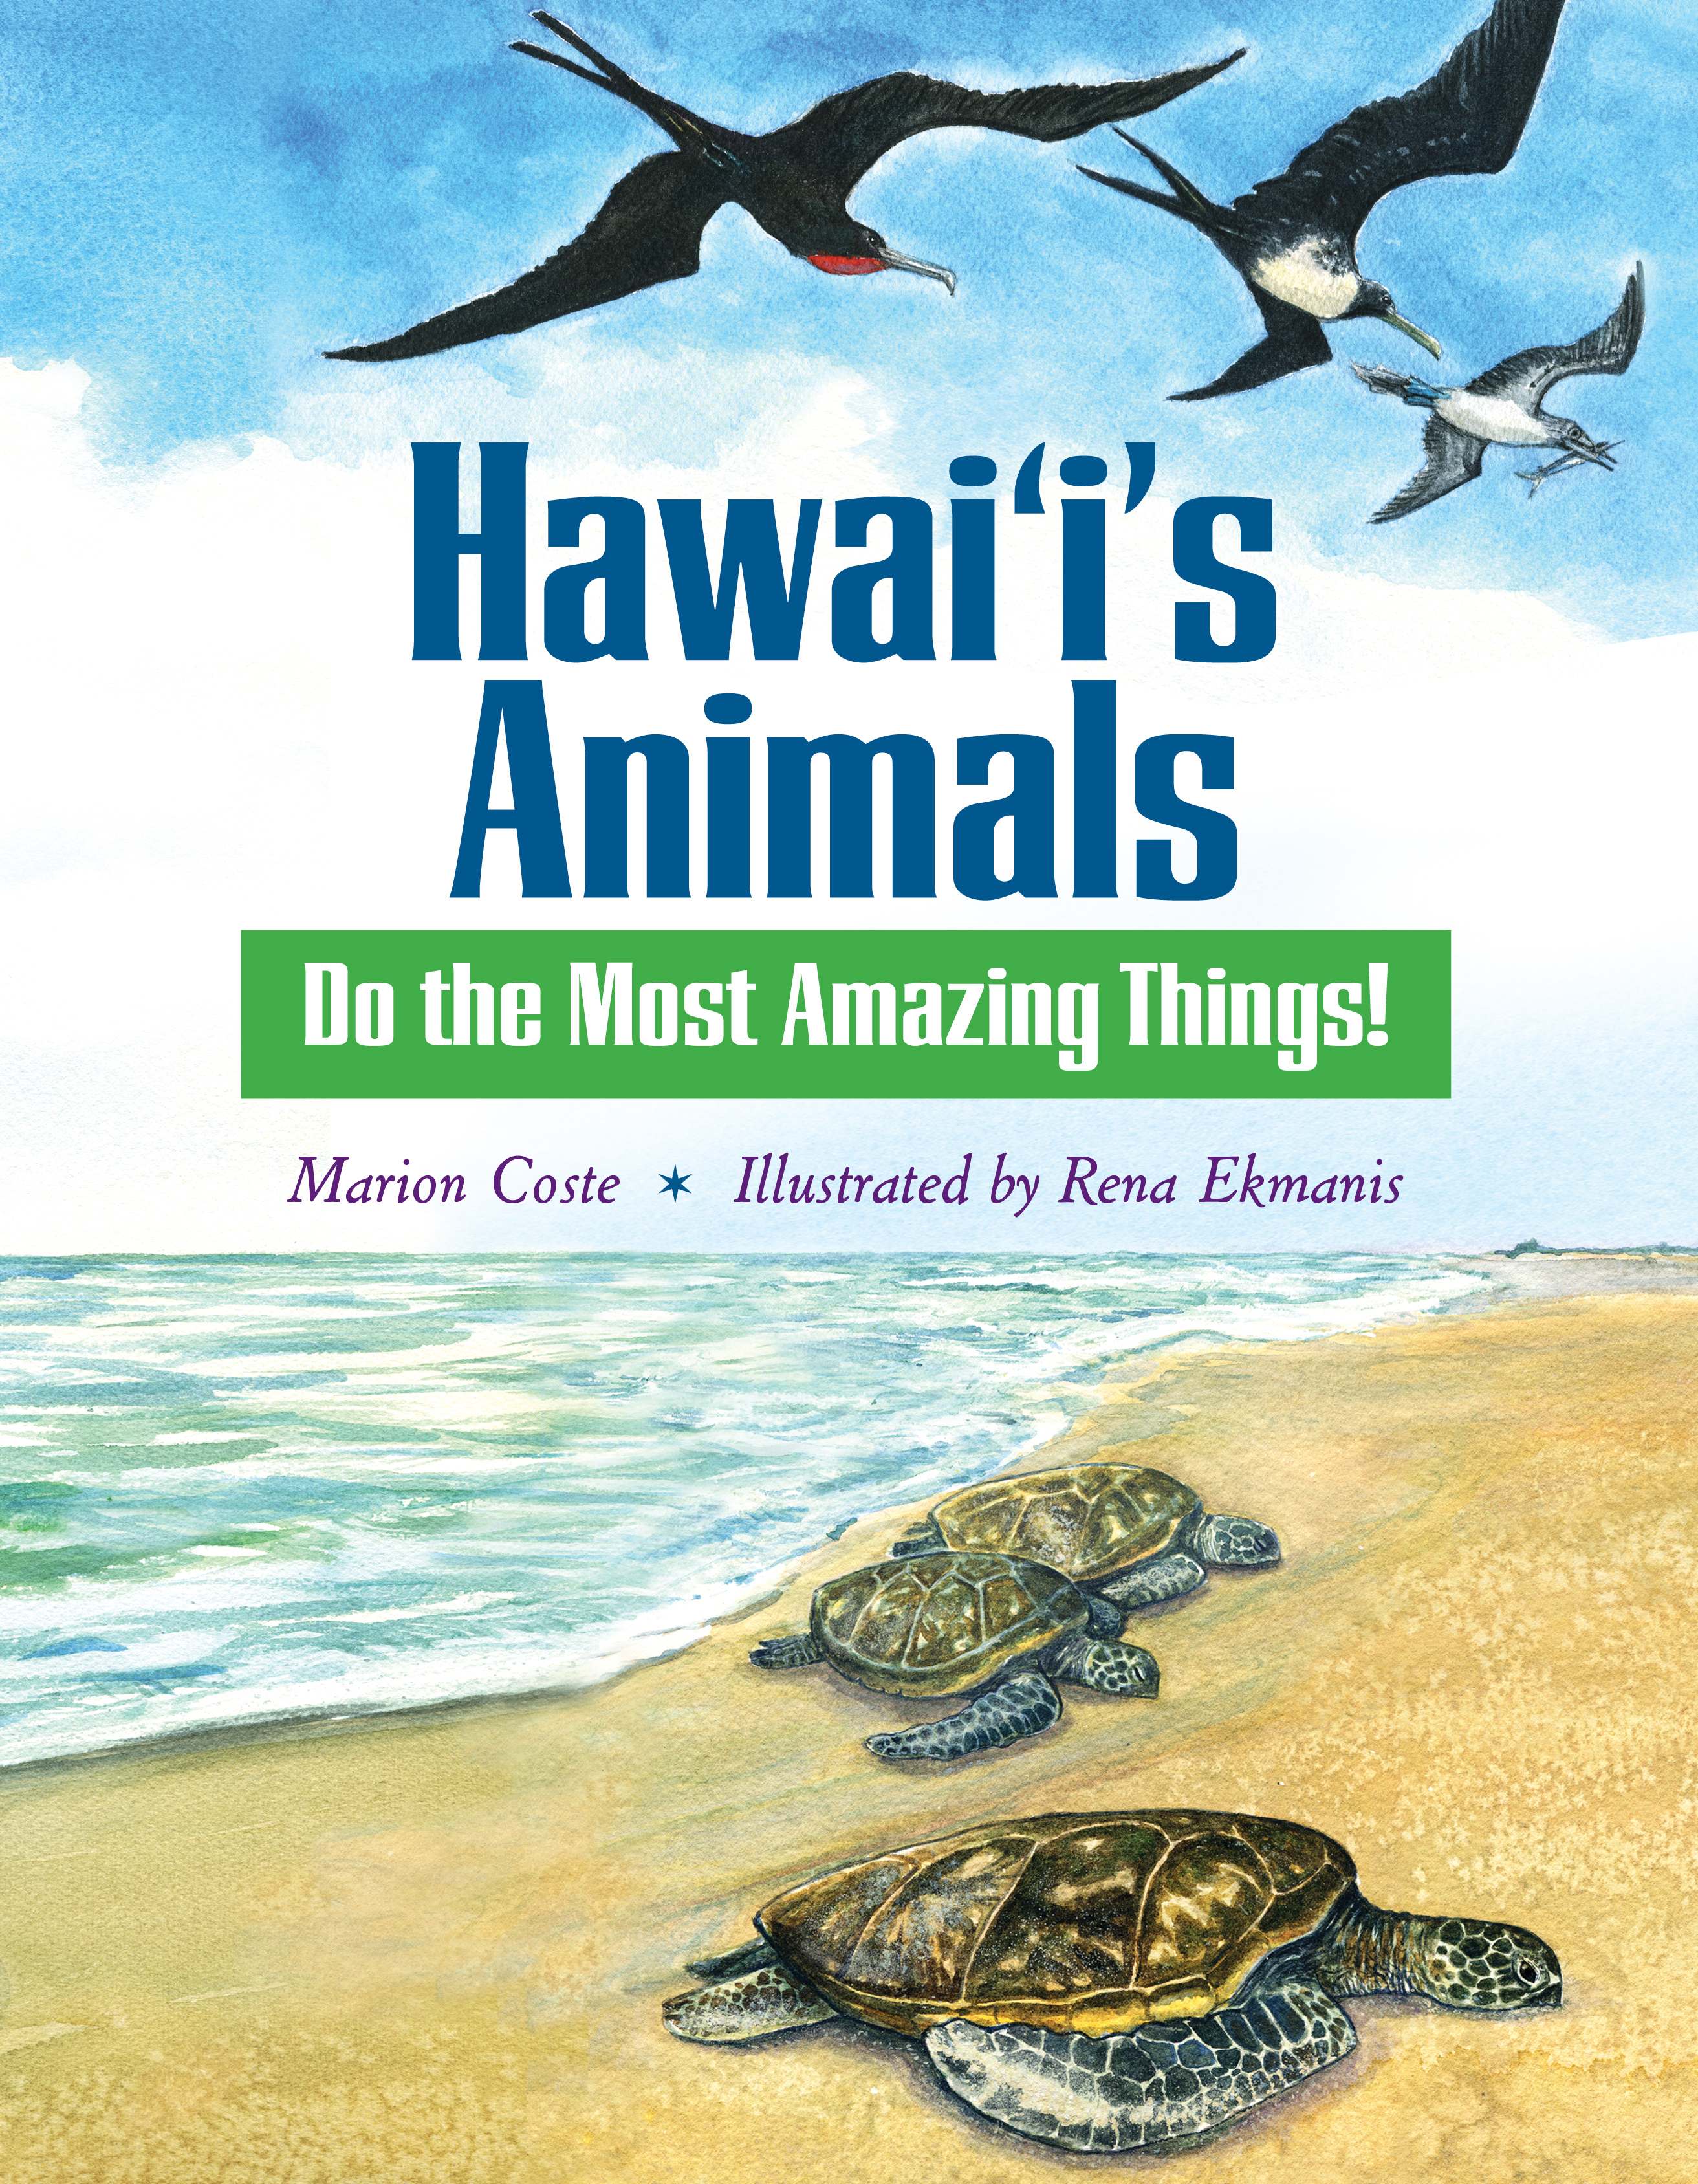 New Hawaii Titles Now Available In Our Store